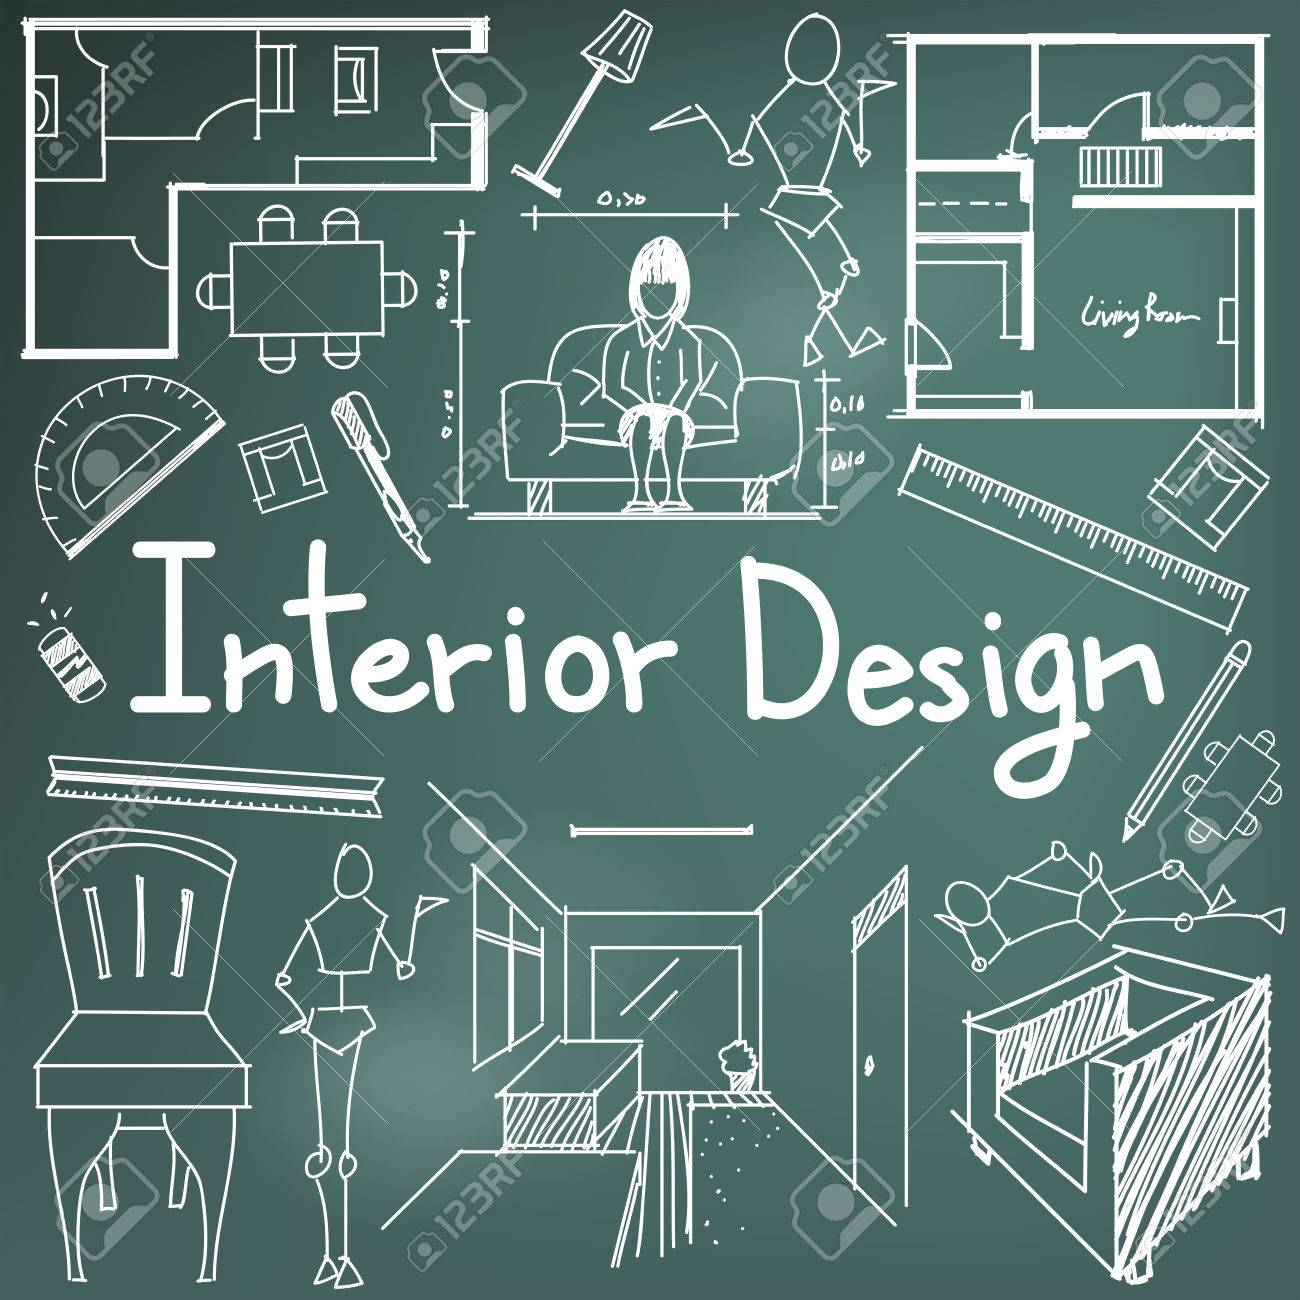 Interior design and building blueprint profession and education interior design and building blueprint profession and education handwriting doodle tool sign and symbol in blackground malvernweather Images